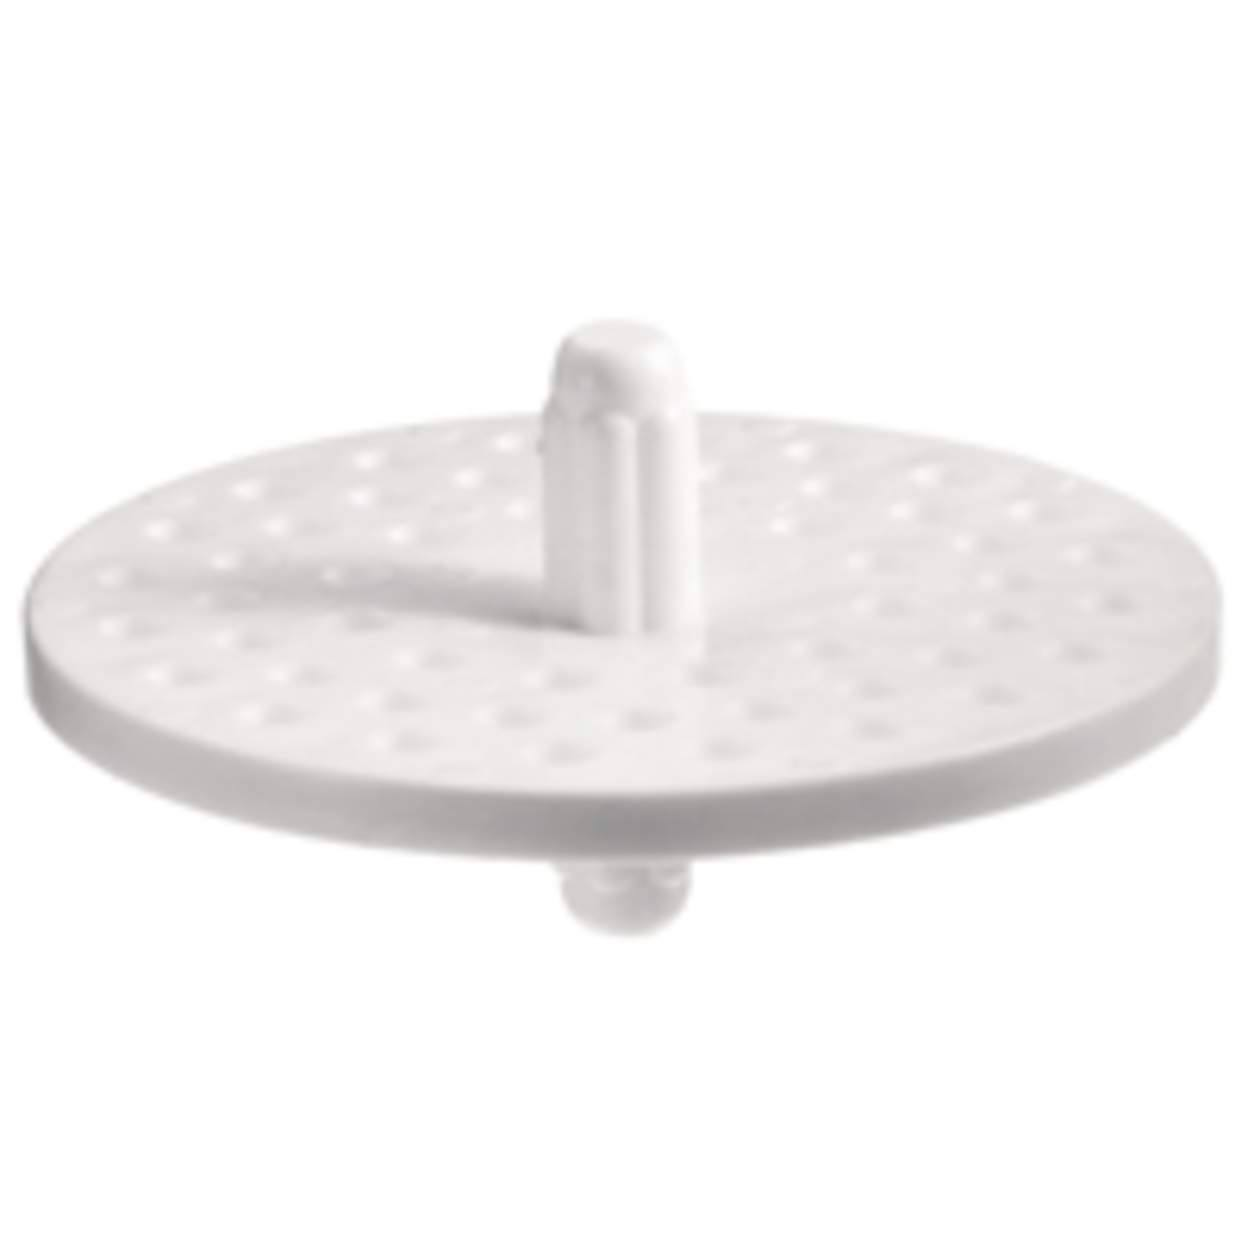 Plumb Pak PP820-27 Strainer Guard - White